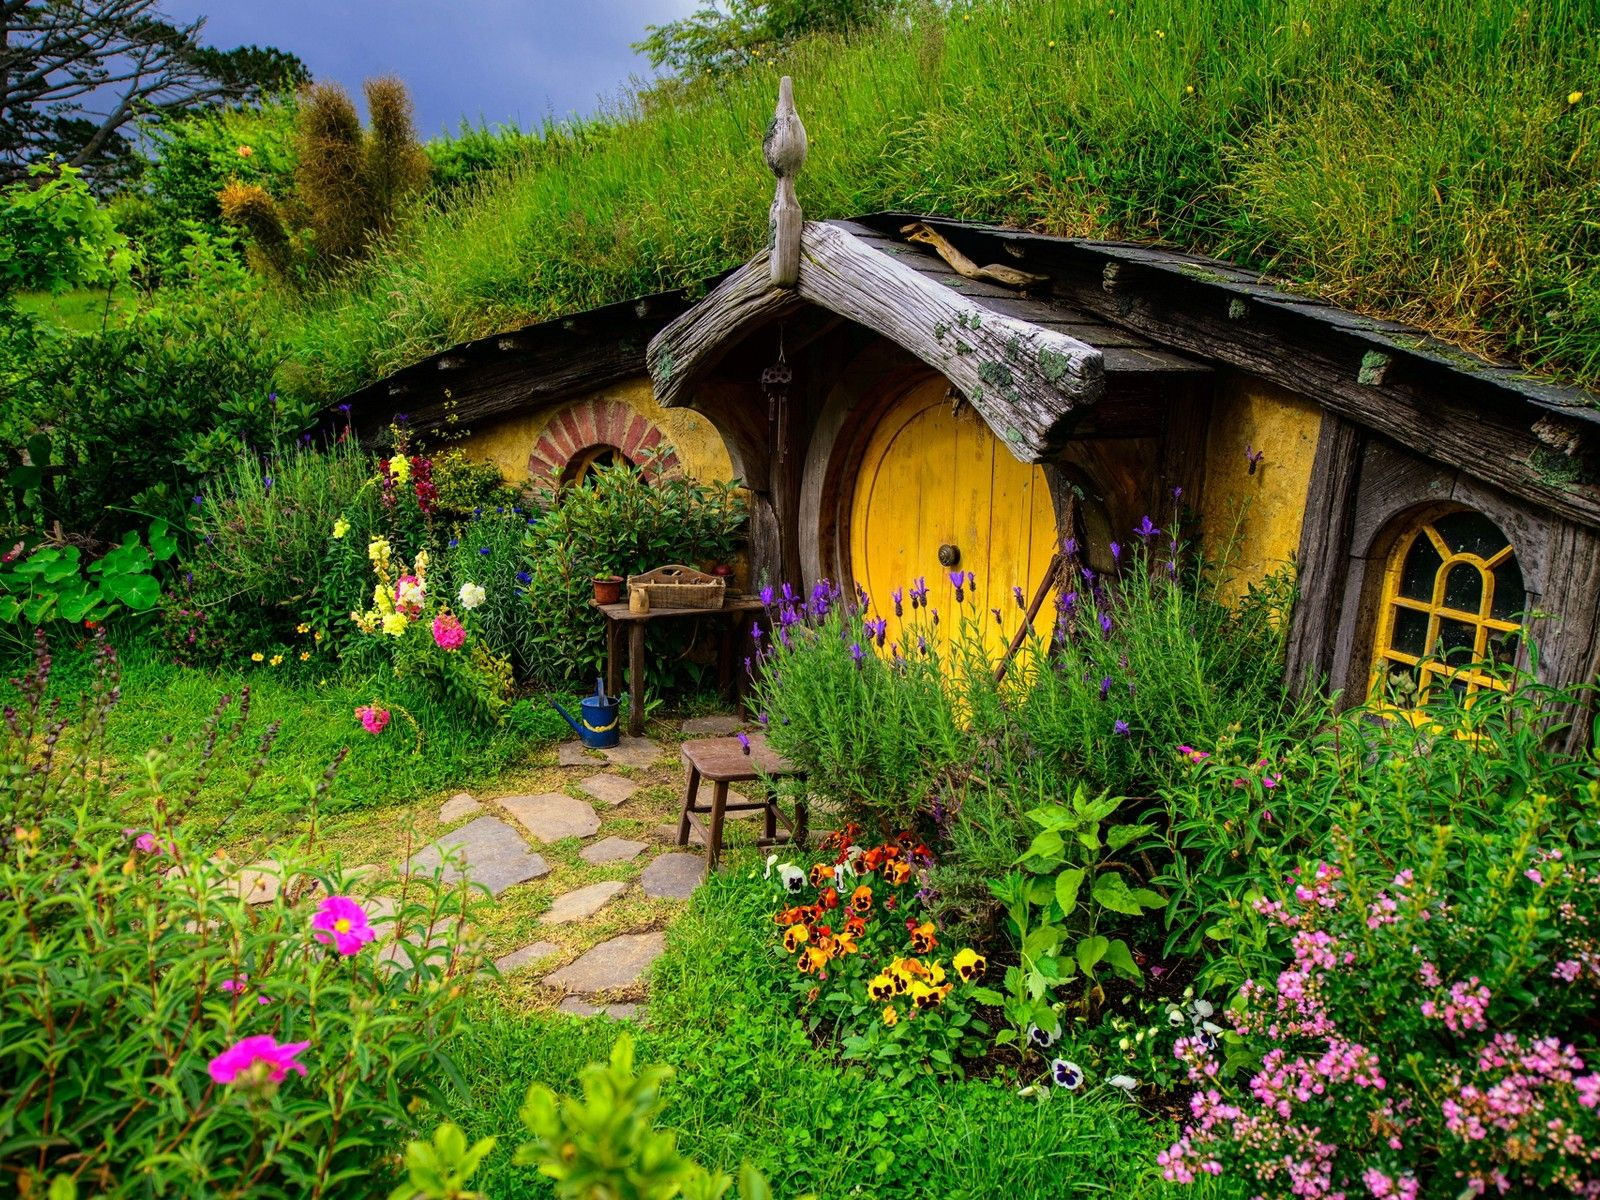 Beautiful Cottages Old Beautiful Cottage Wallpaper Nature Wallpapers Hobbithaus Erdhaus Marchenhaus